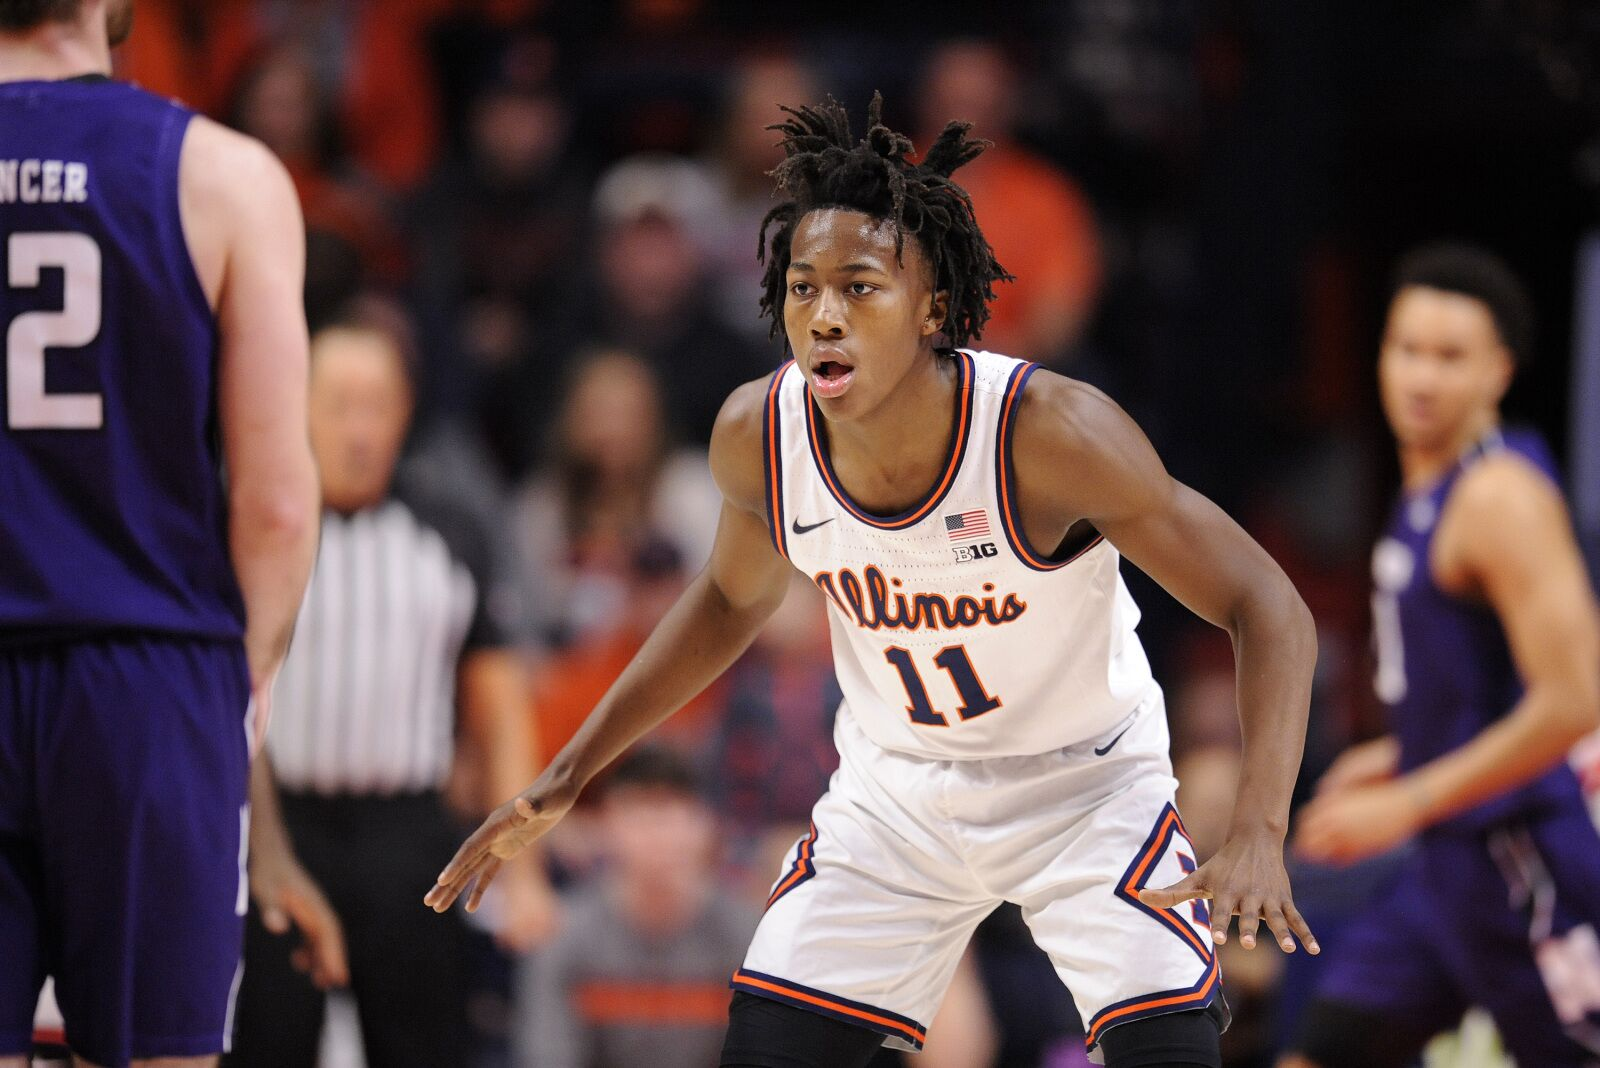 Illinois Basketball: Ayo a game-time decision for Illini against Penn State